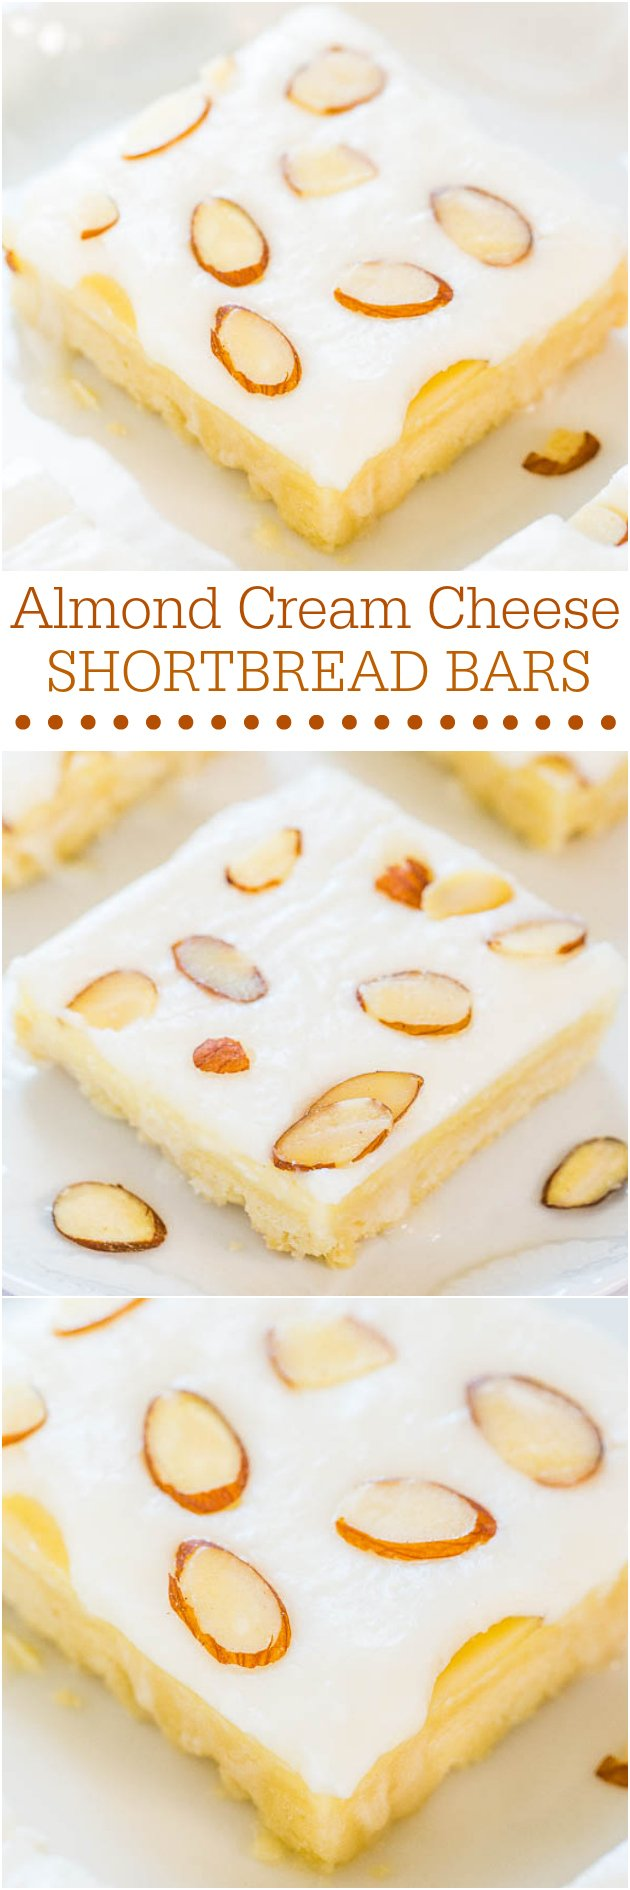 Almond Cream Cheese Shortbread Bars - Easy, buttery shortbread is topped with cream cheese..mmm! Plus irresistible almond frosting!!